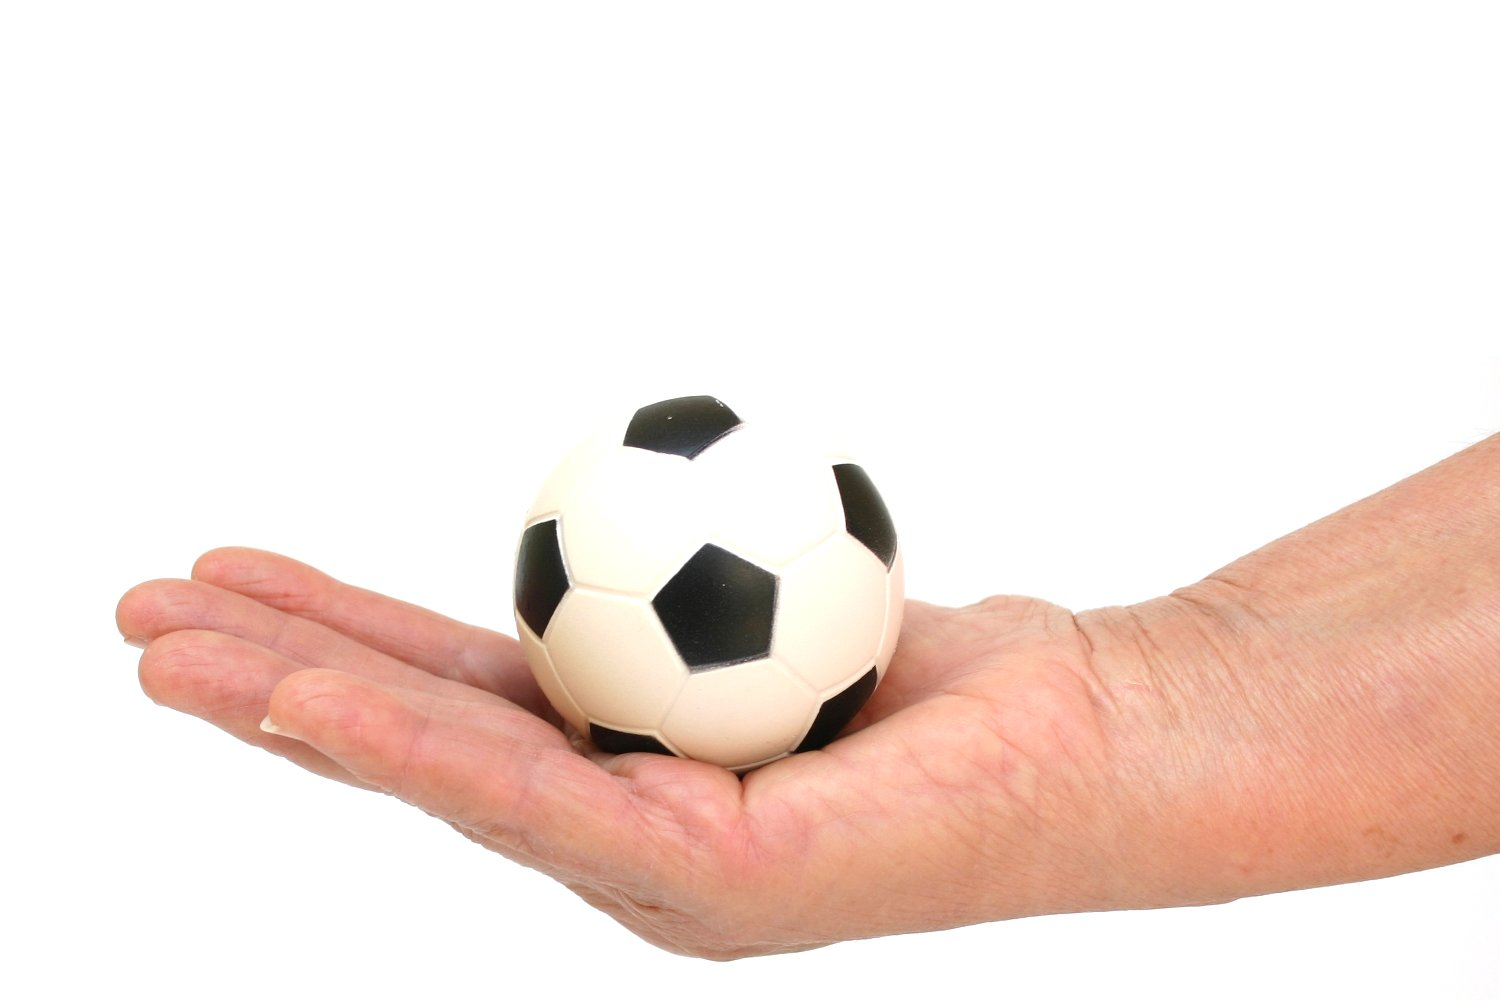 soccer ball in hand, Abstract, Round, Leisure, Male, HQ Photo